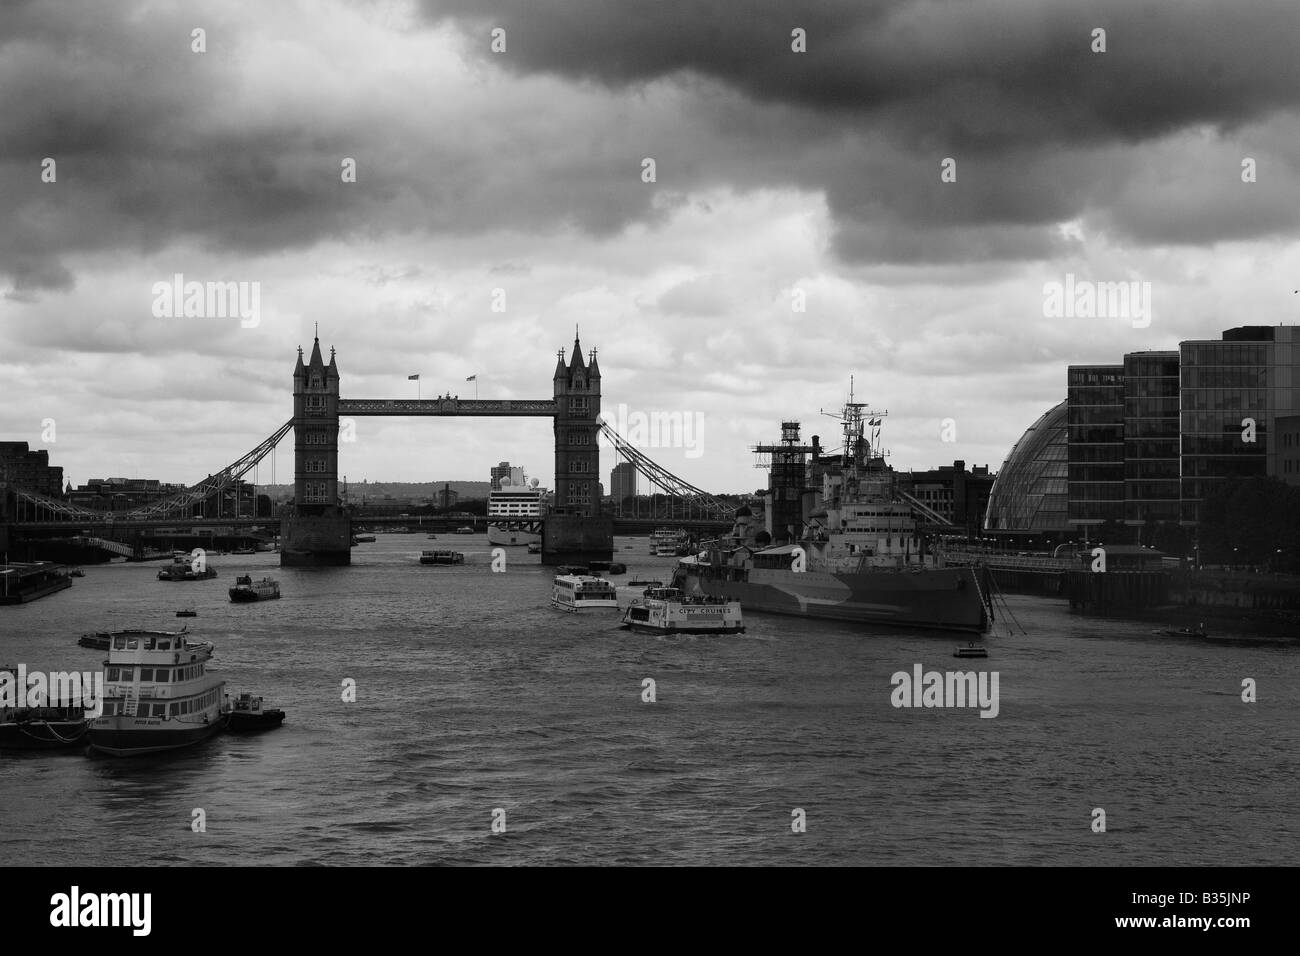 The Thames with Tower Bridge and HMS Belfast with dark storm clouds overhead - Stock Image